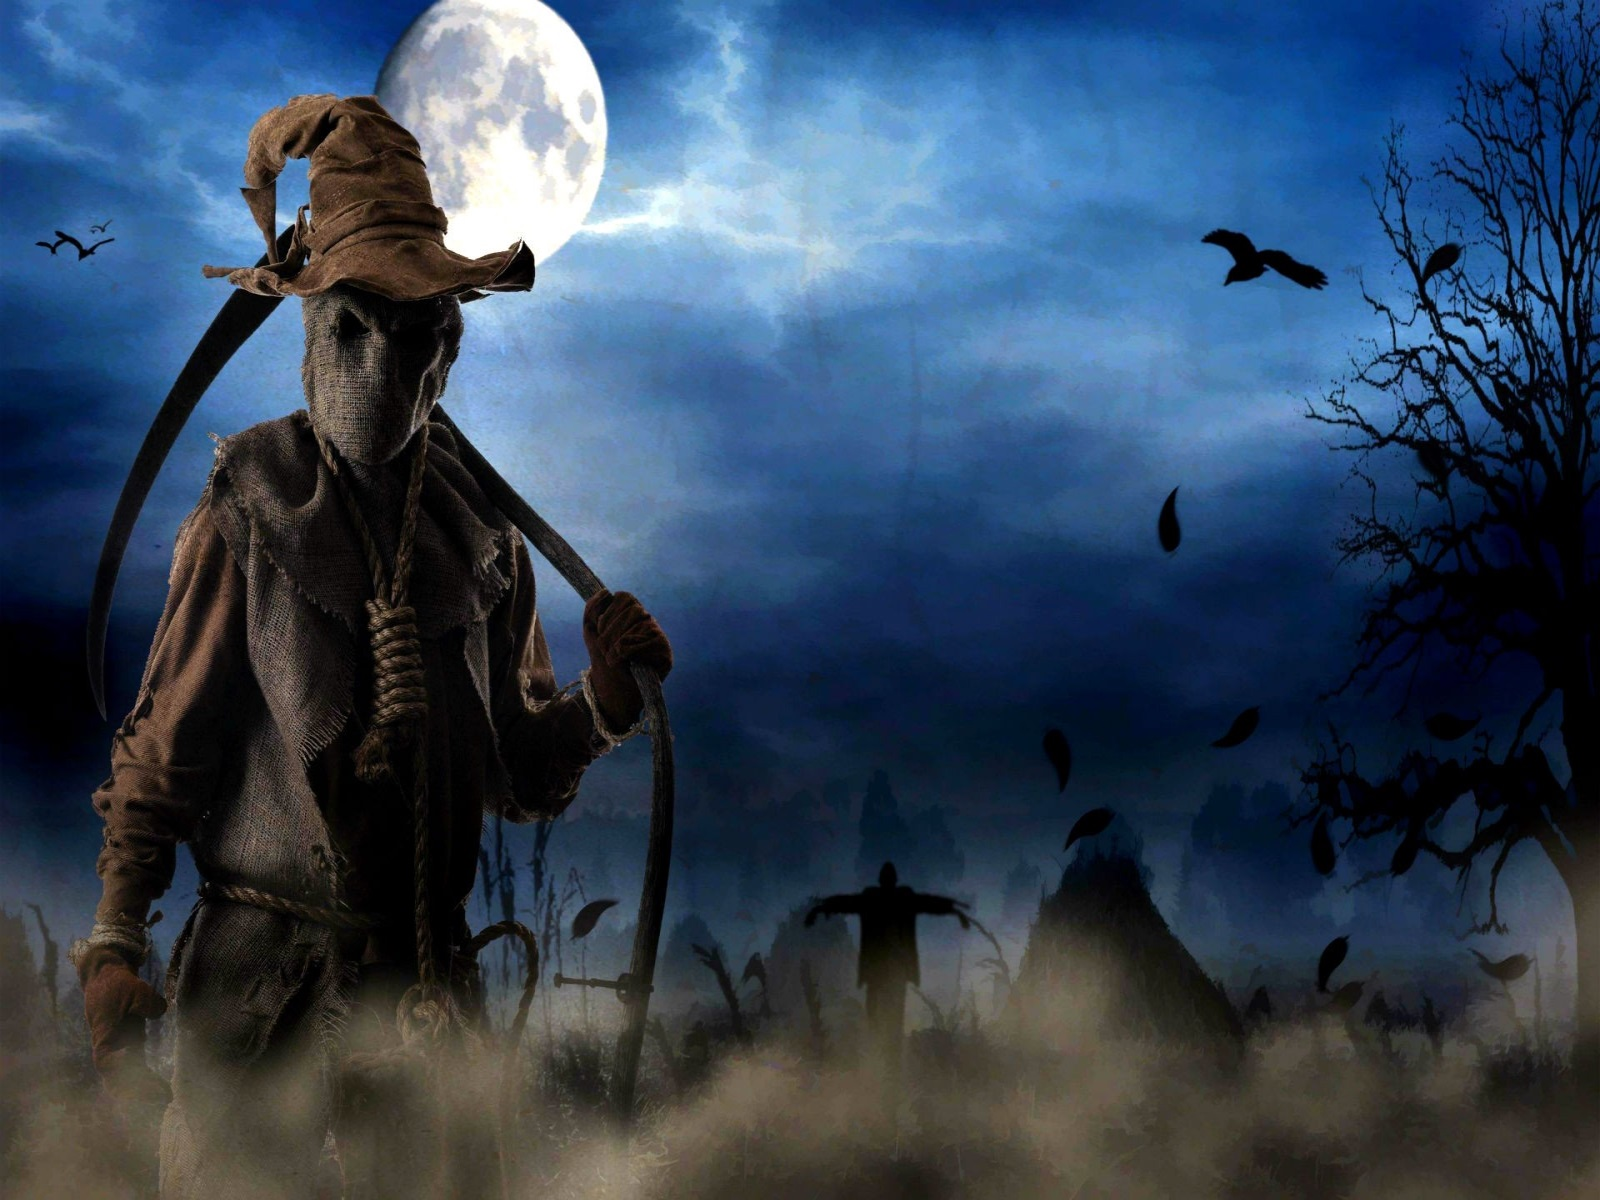 Horror Animated Wallpaper Free Download For Pc: High Resolution Halloween Images Wallpapers Backgrounds